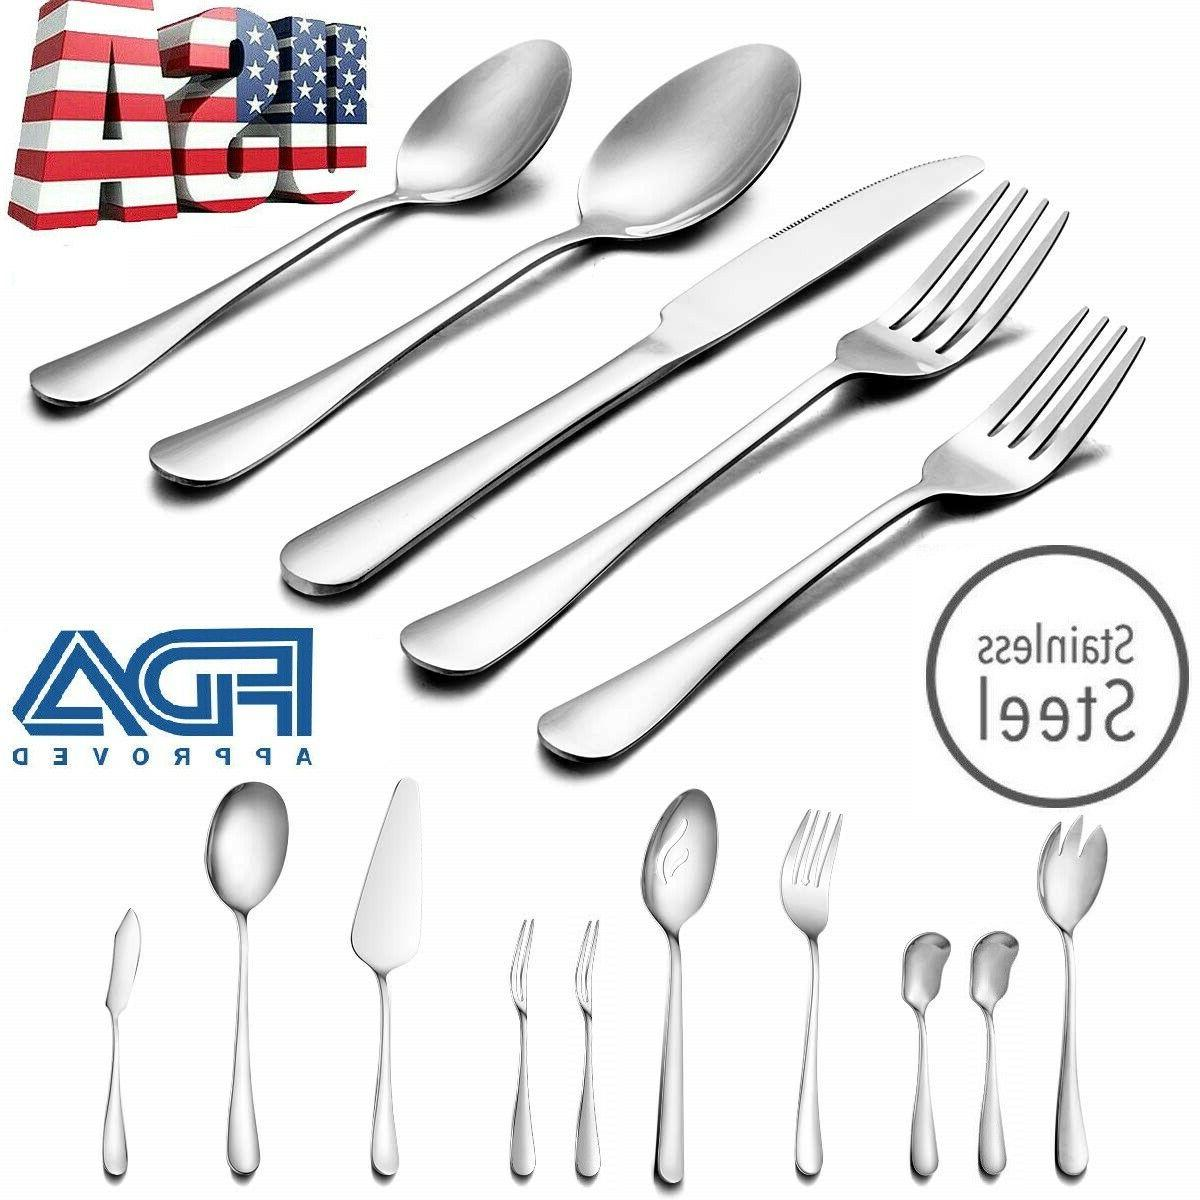 50 pcs stainless steel flatware set service